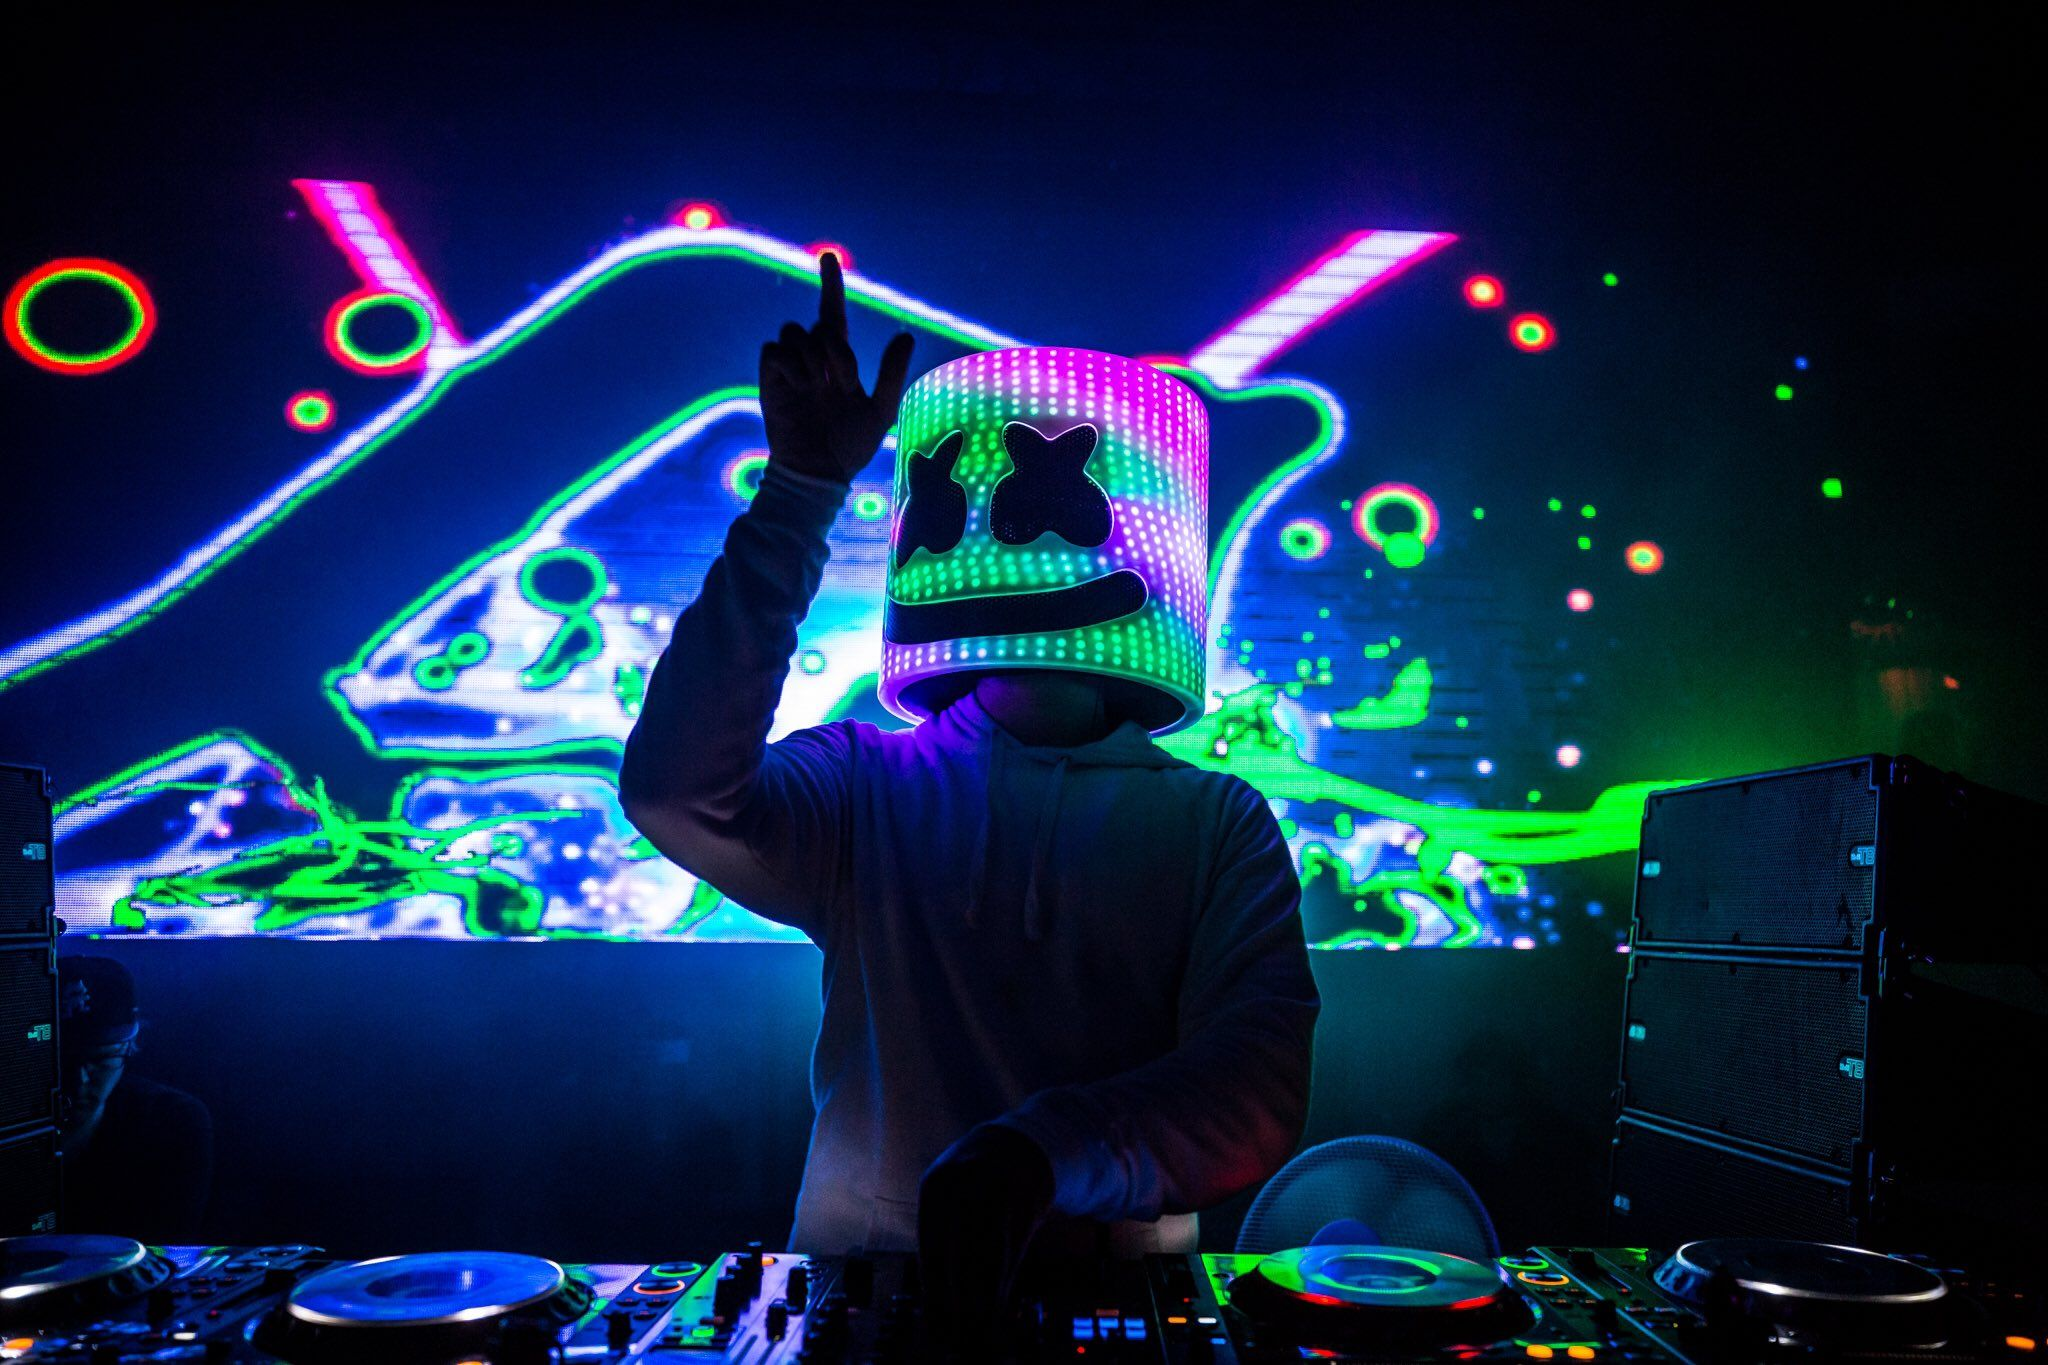 Marshmello Dj Hd Marshmello Dj Wallpapers Fondos De Pantalla De